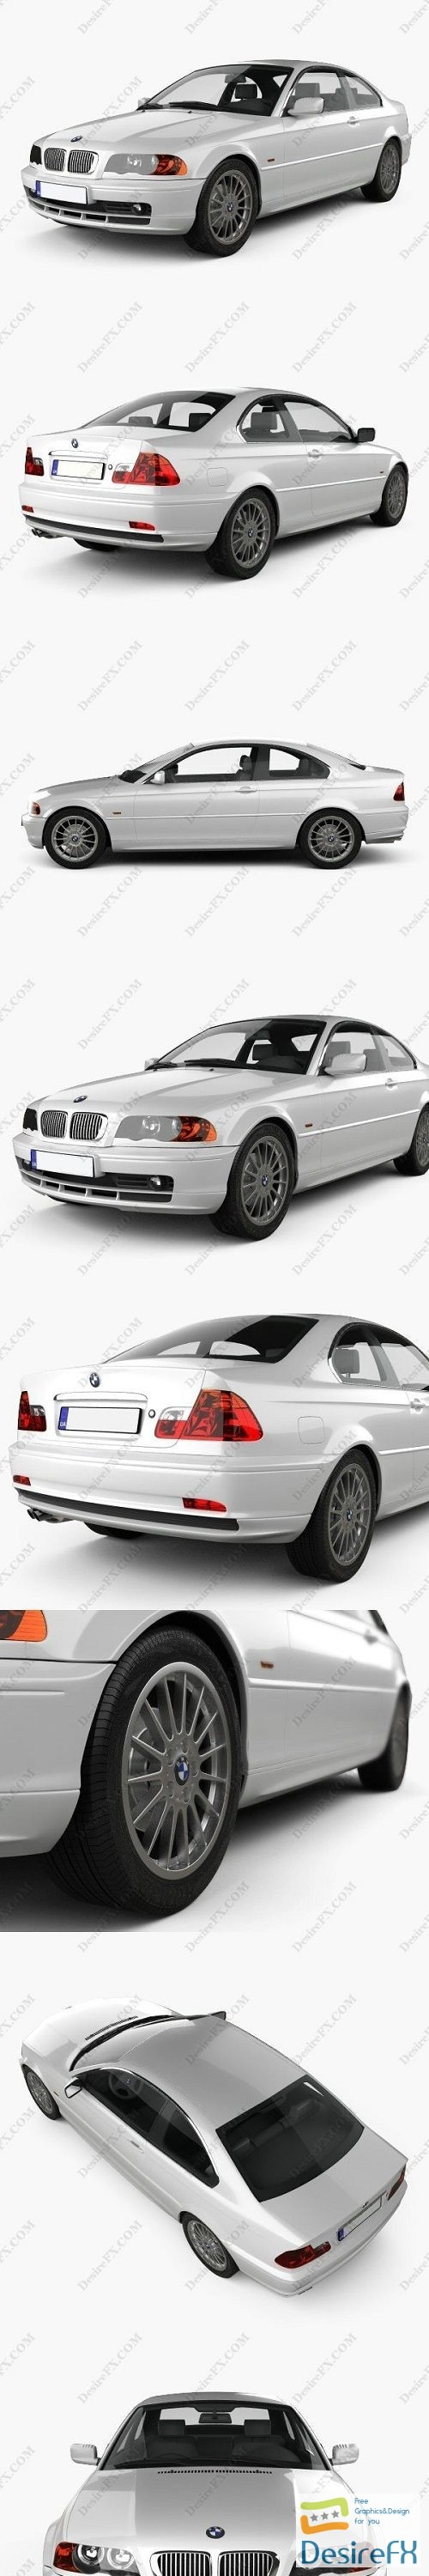 3d-models - BMW 3 Series coupe E46 2004 3D Model